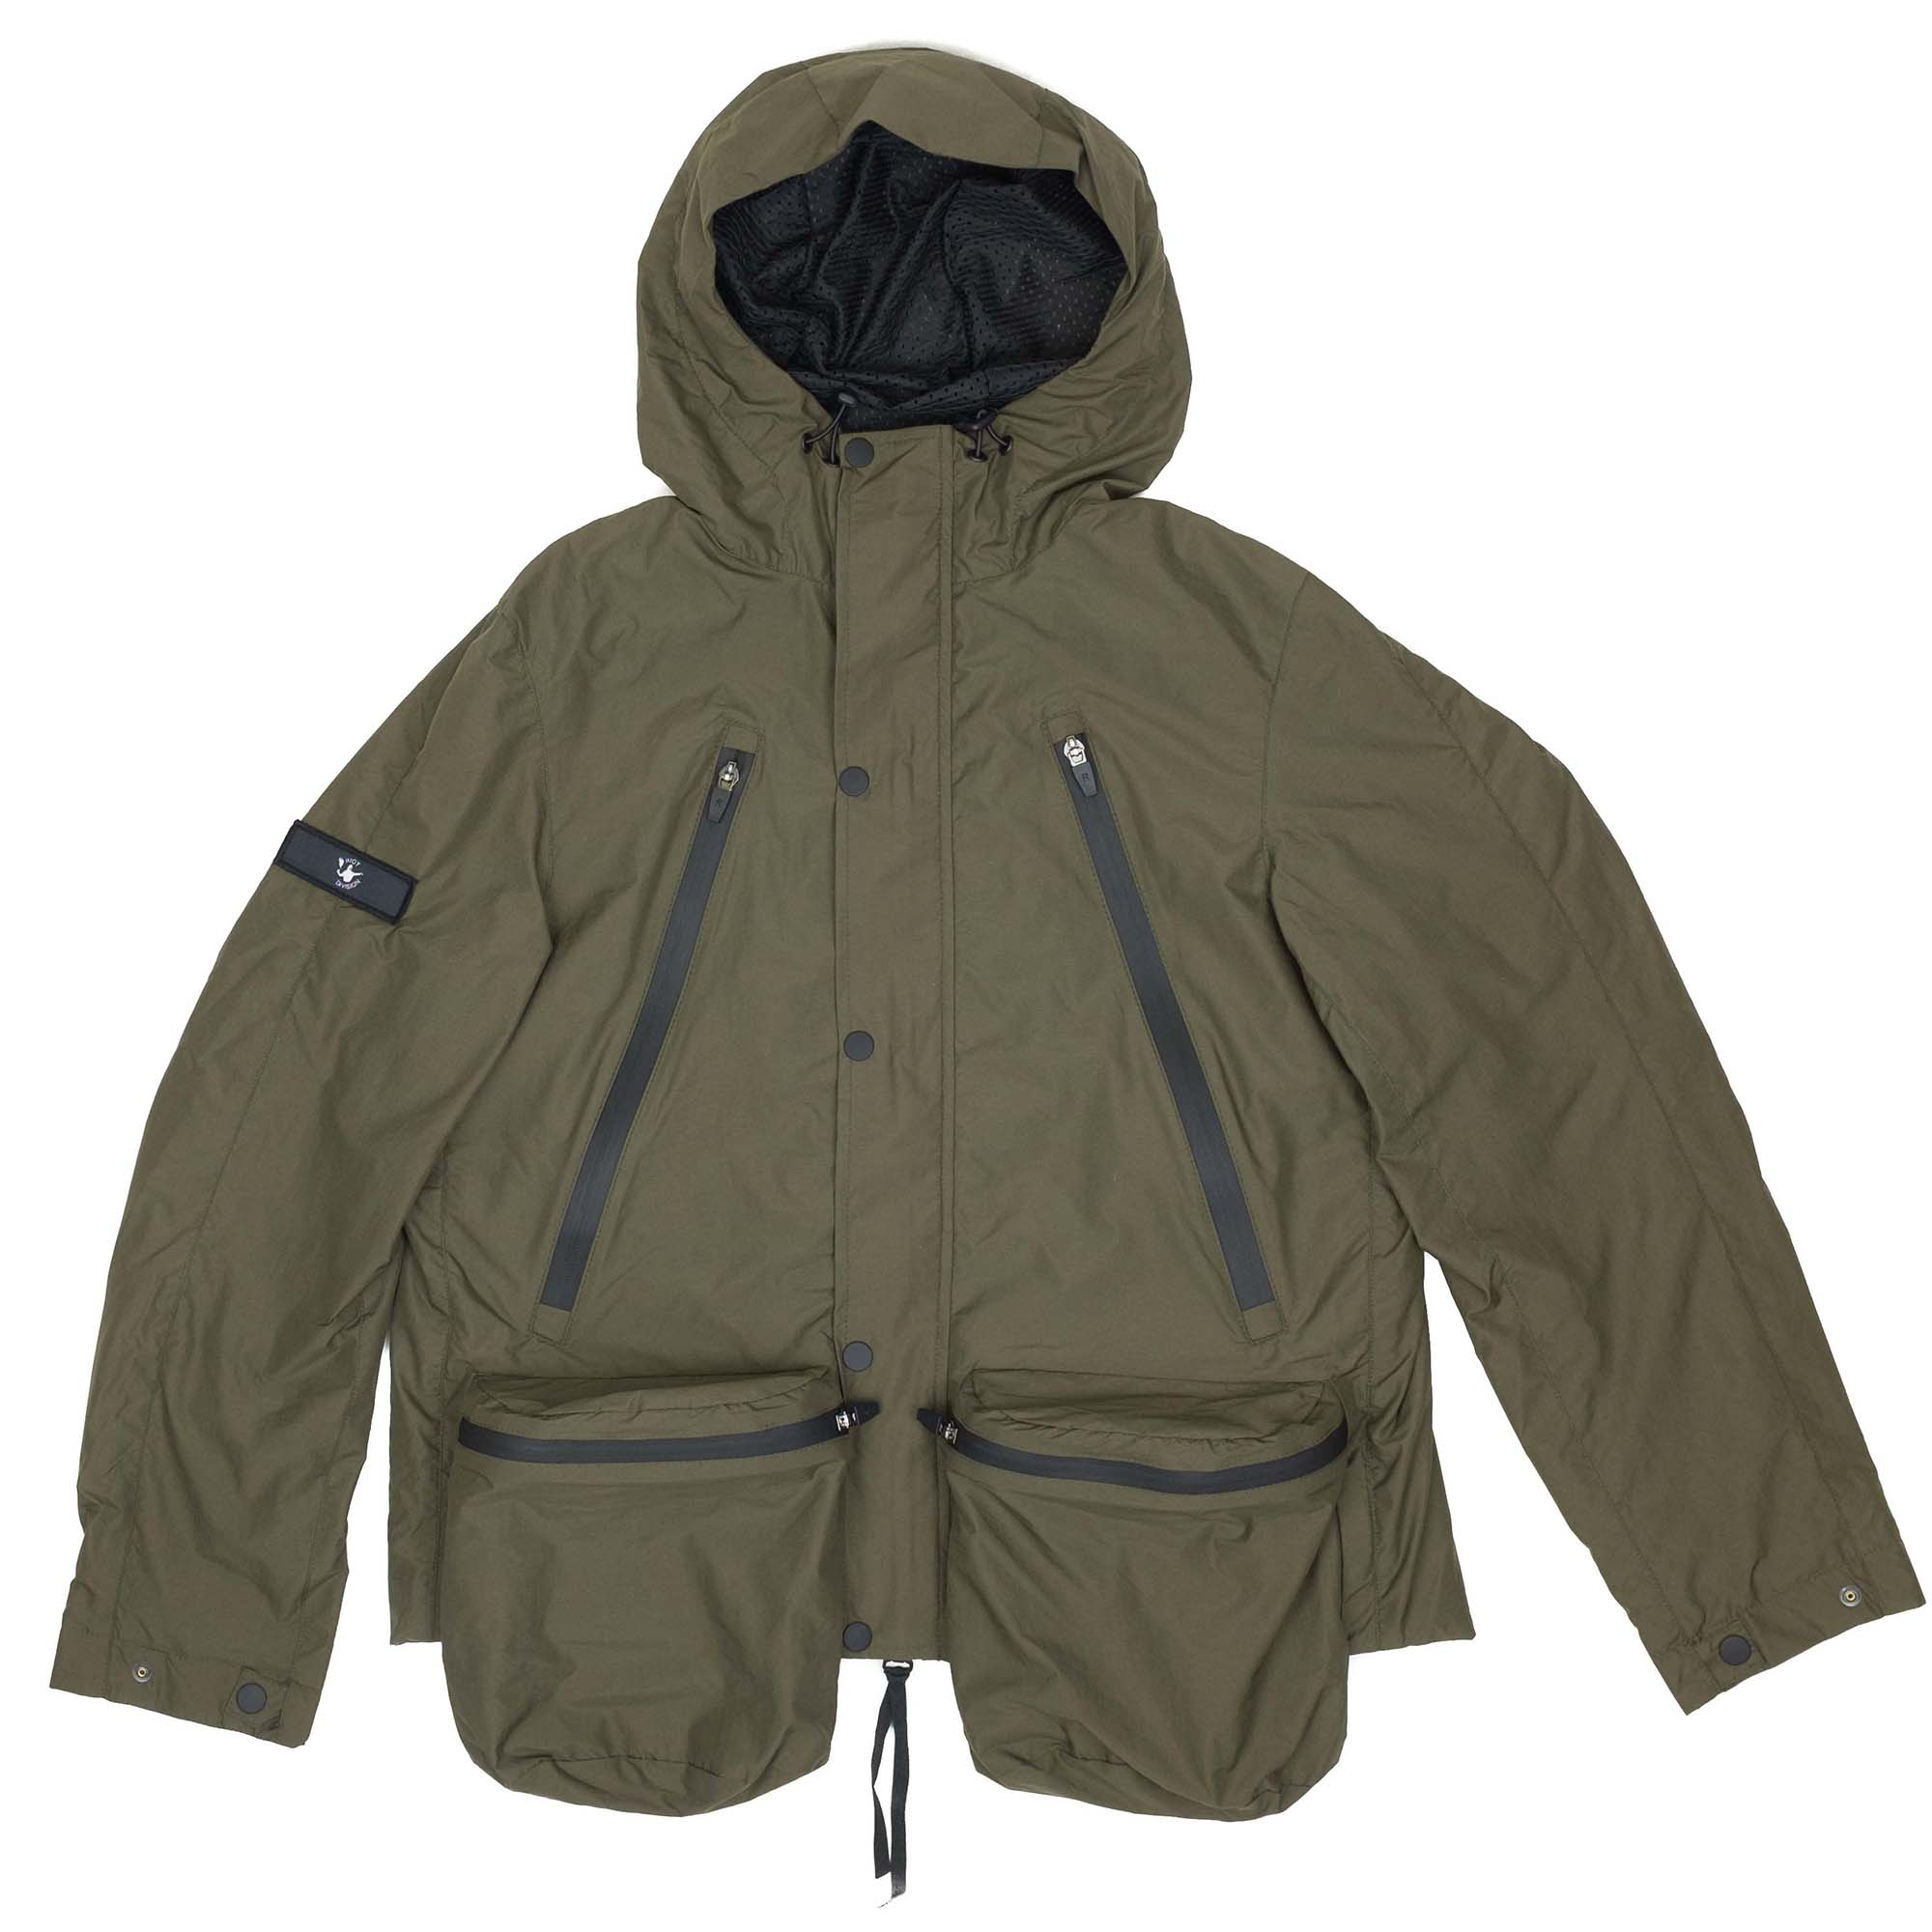 Riot Division Wrapping Parka 3 Gen - Khaki